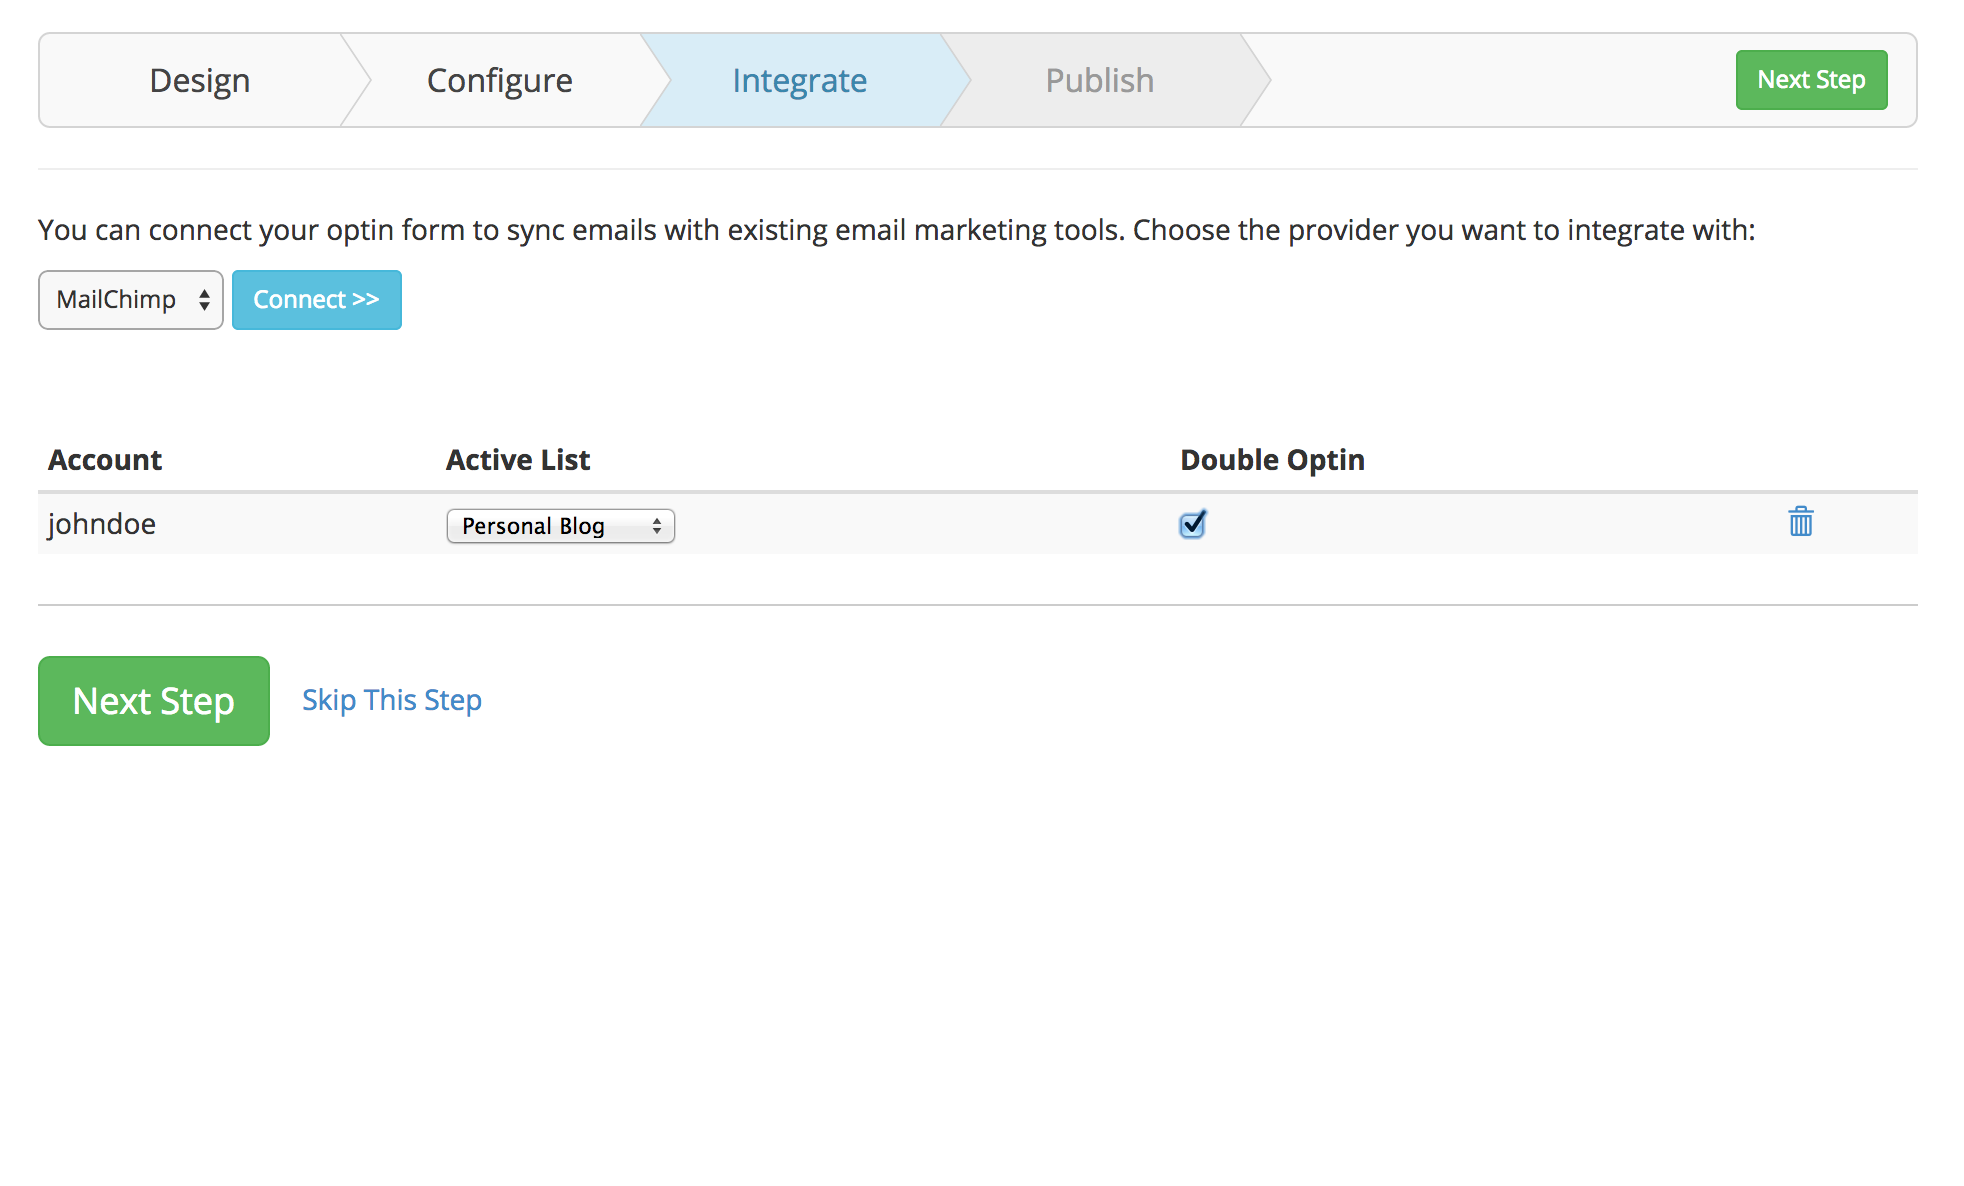 This is the integration step where you can connect your optin form to sync with all popular email marketing tools like MailChimp, Aweber, Constant Contact, etc